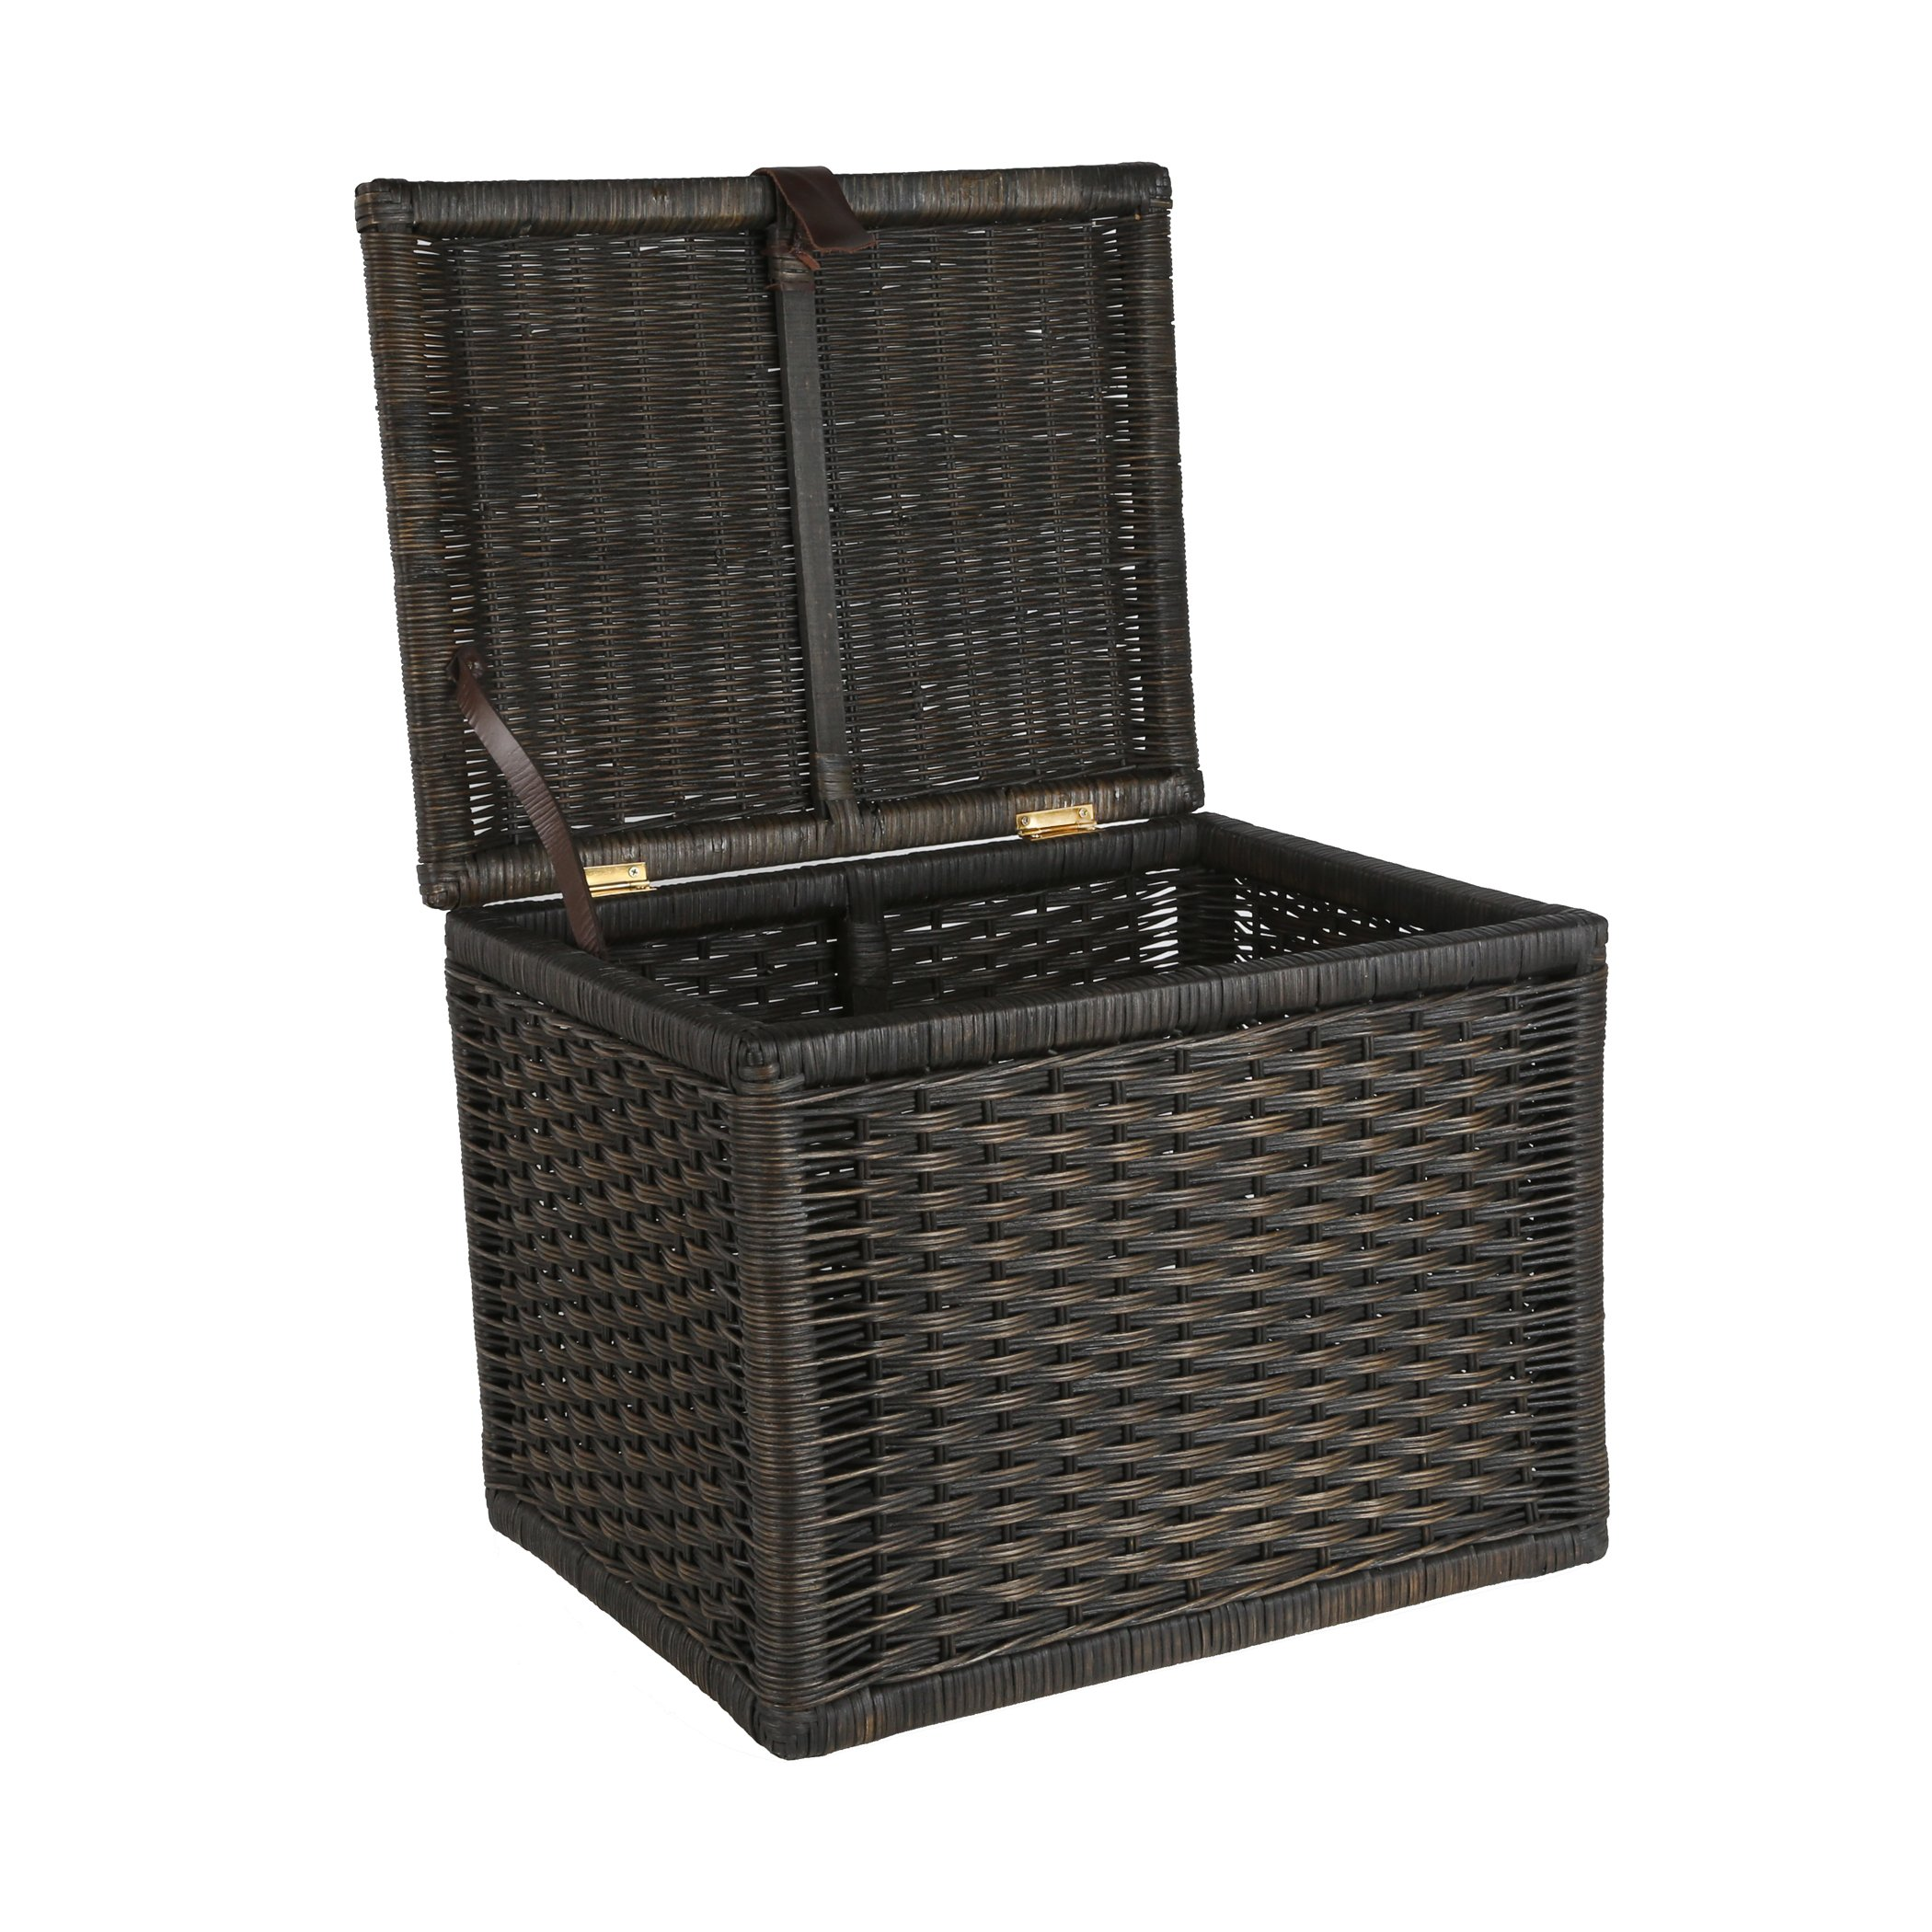 The Basket Lady Small Wicker Storage Trunk | Wicker Storage Chest One Size (size 1) Antique Walnut Brown